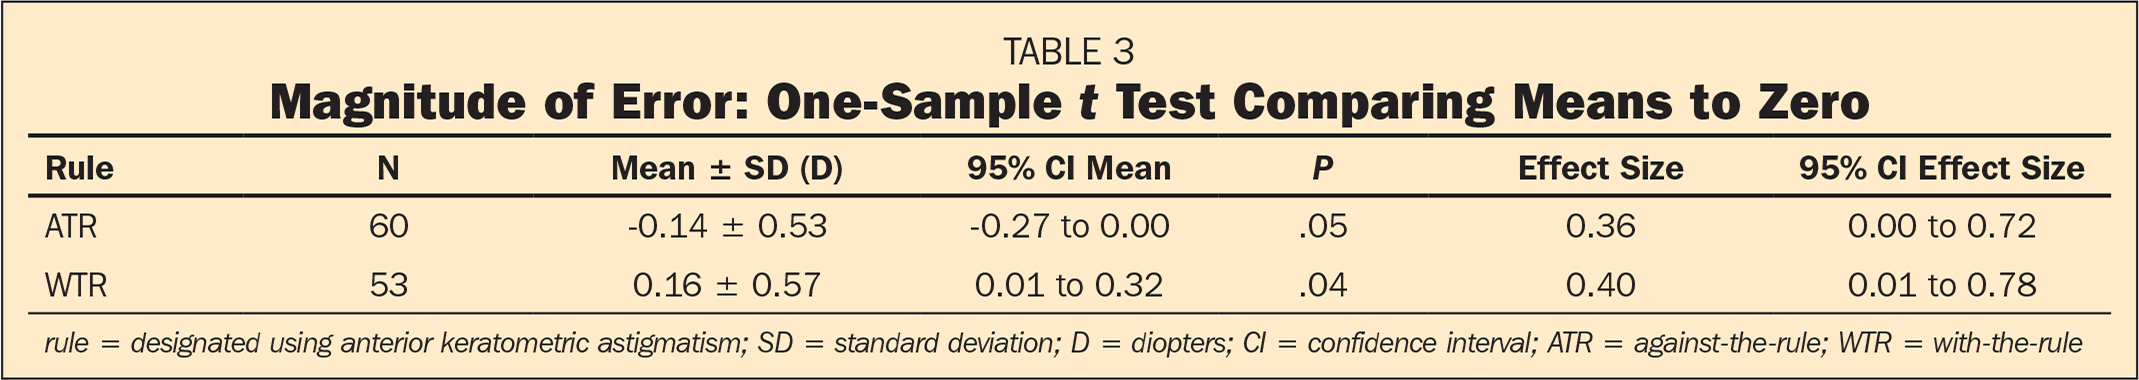 Magnitude of Error: One-Sample t Test Comparing Means to Zero